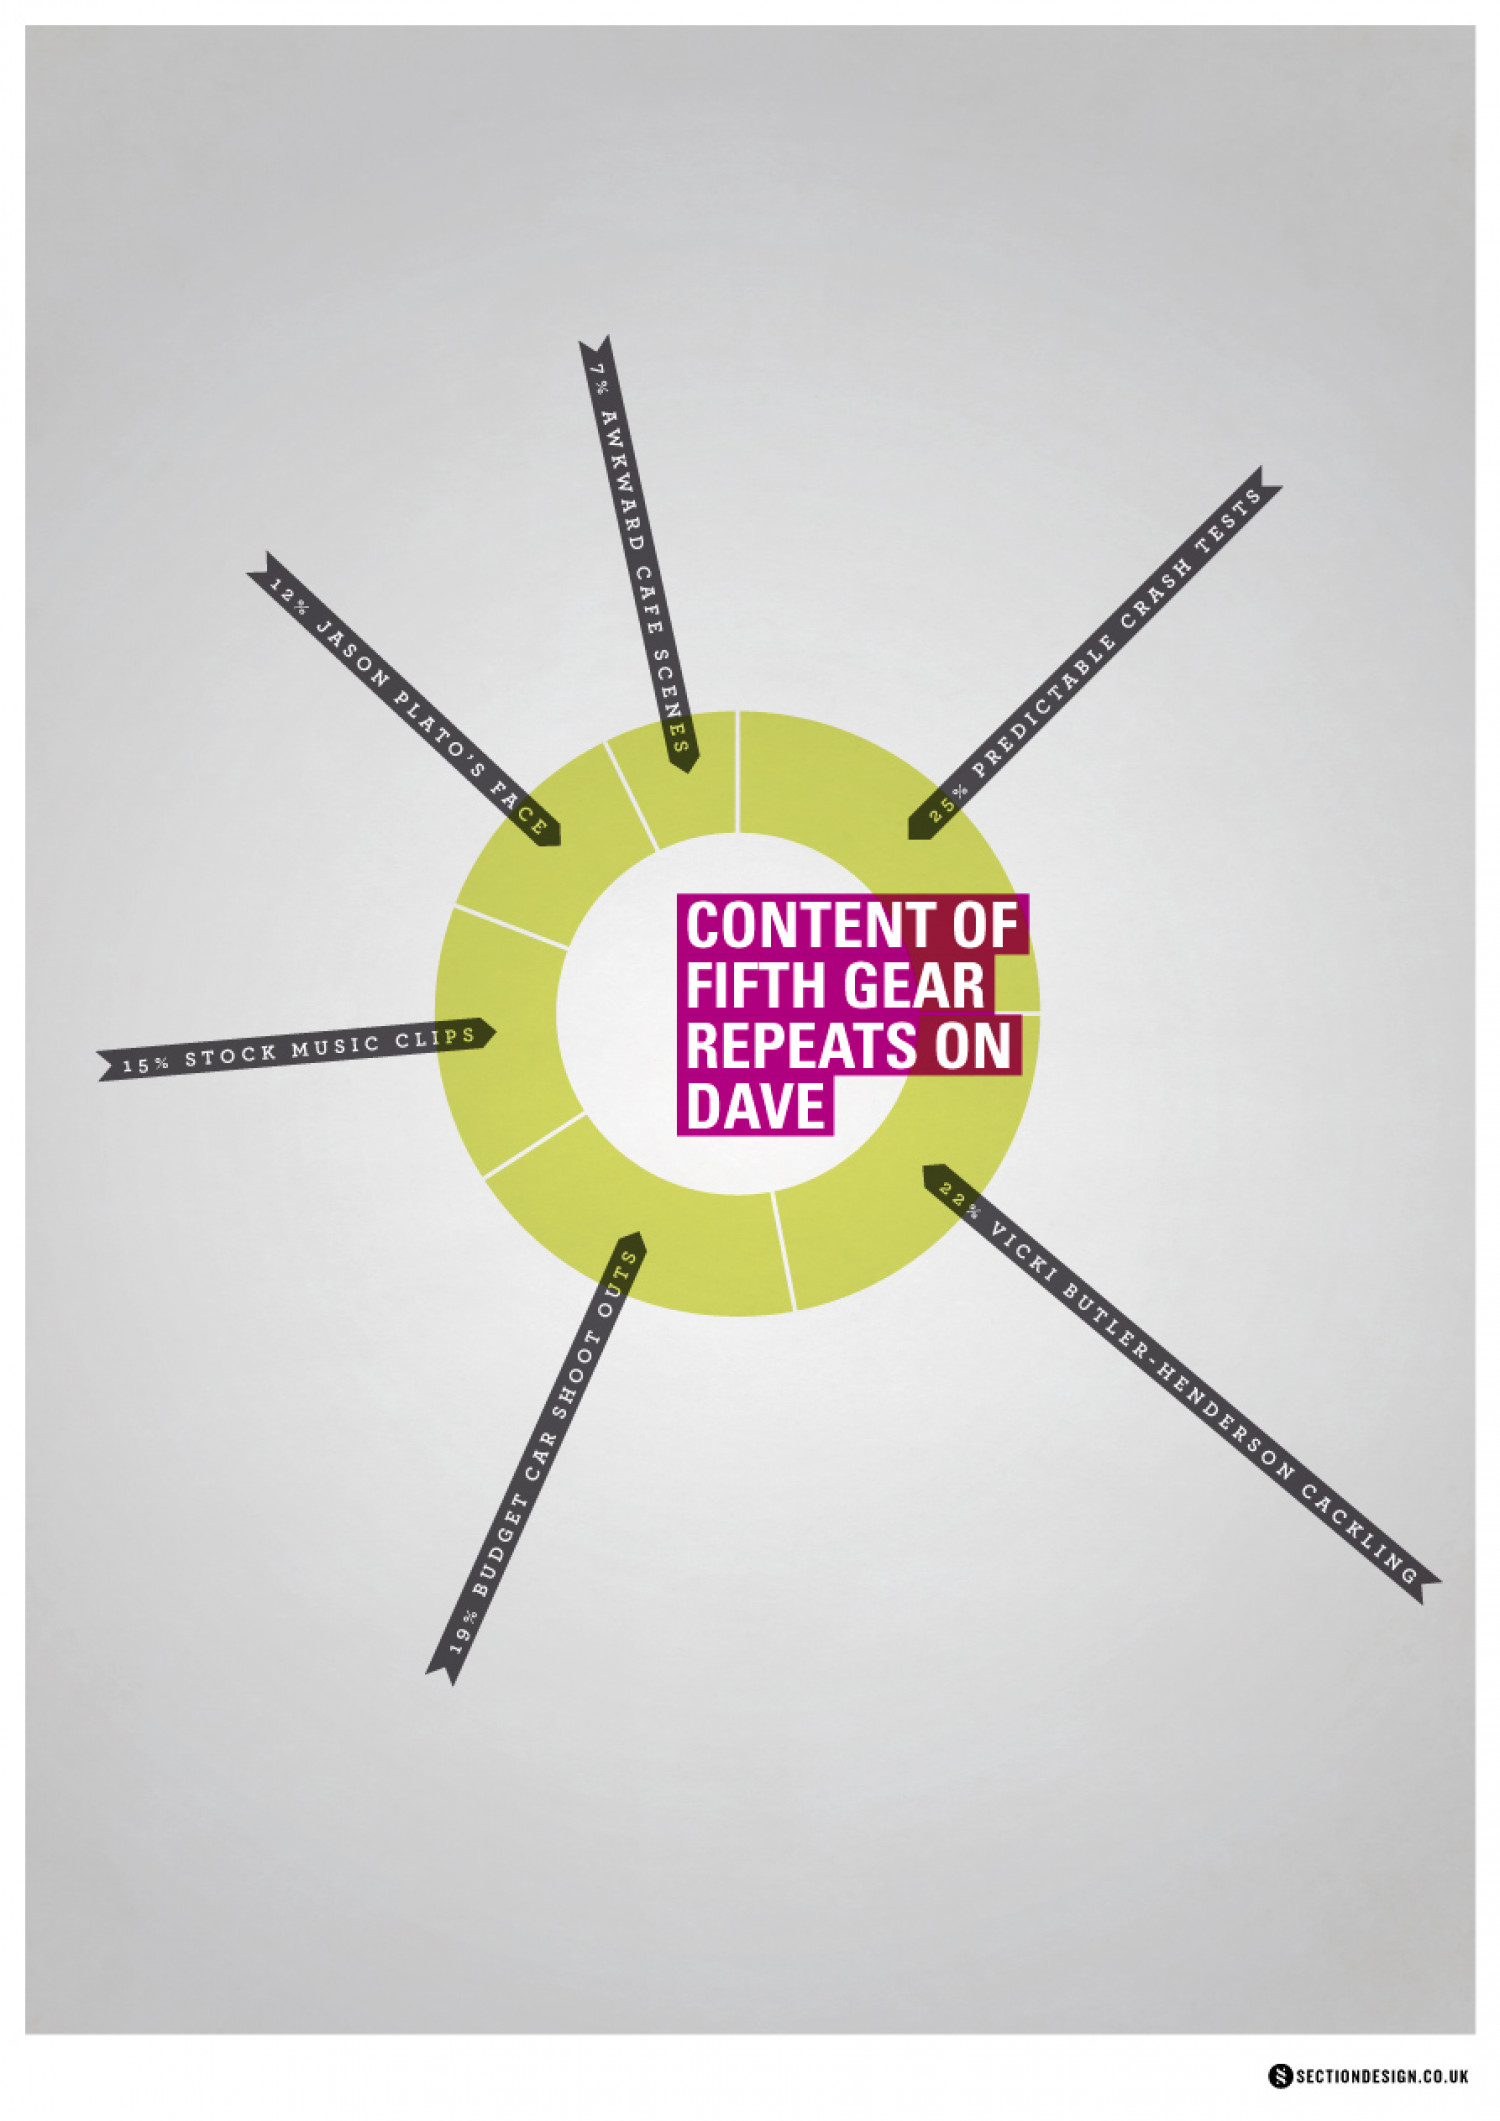 Content of Fifth Gear Repeats on Dave Infographic